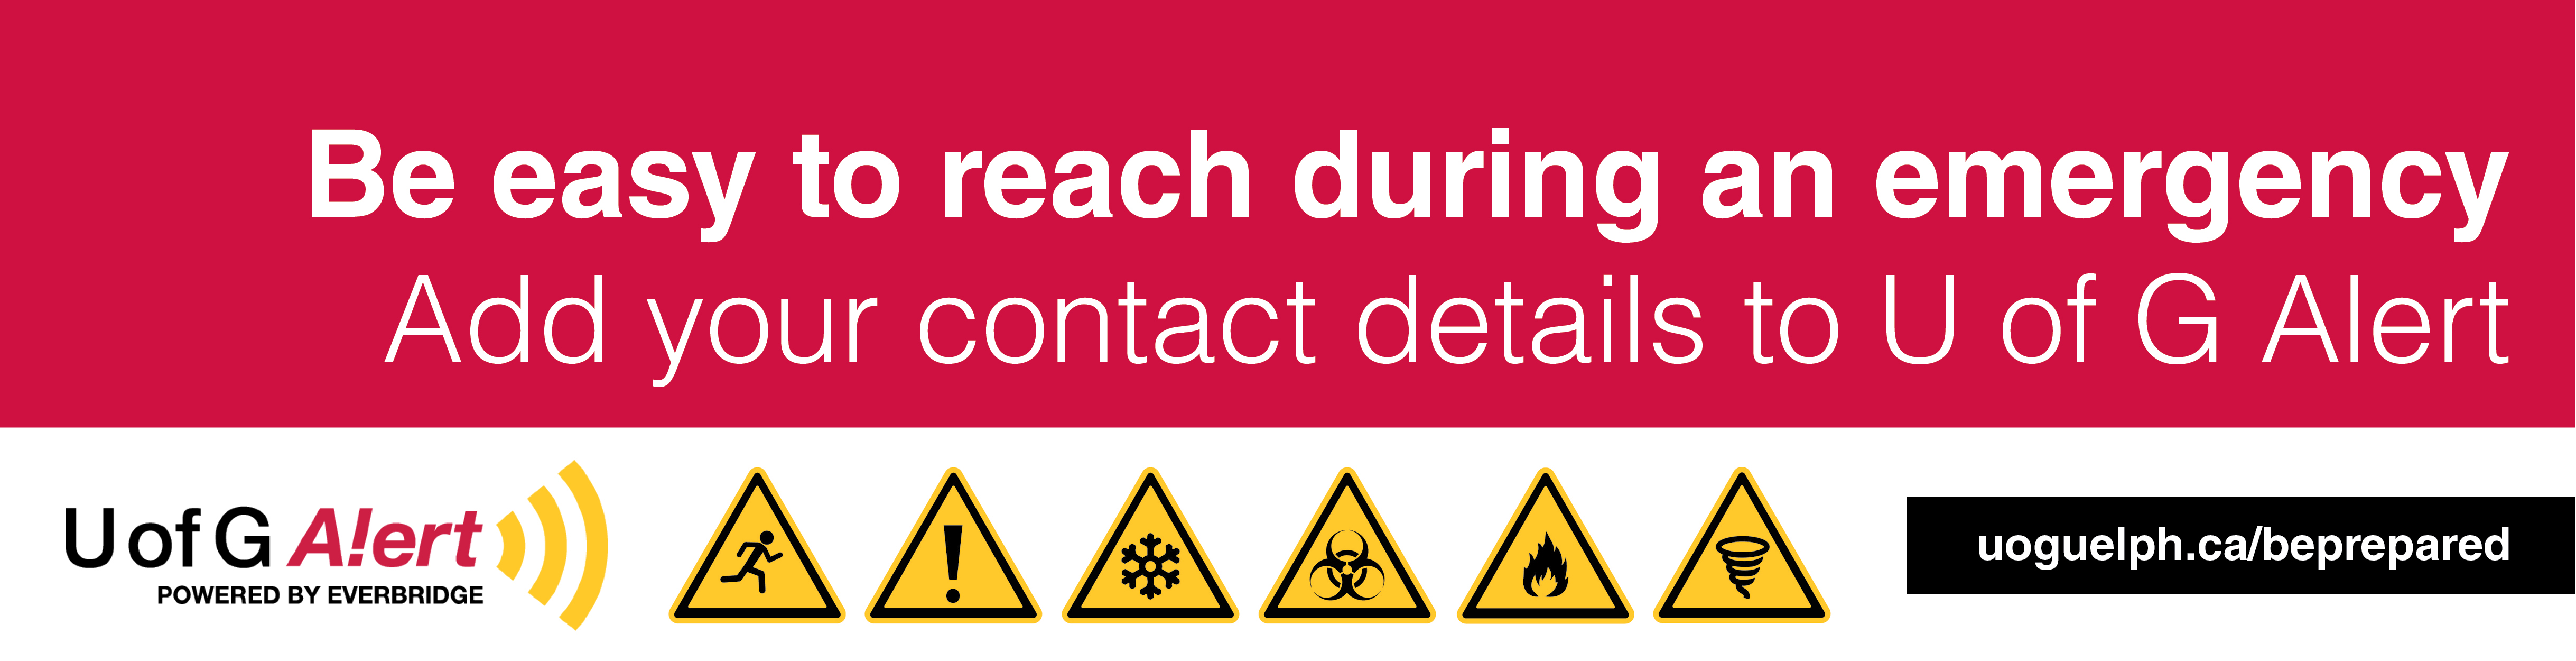 Be easy to reach during an emergency. Add your contacts to UofG Alert. UofG Alert, powered by Everbridge. www.uoguelph.ca/beprepared